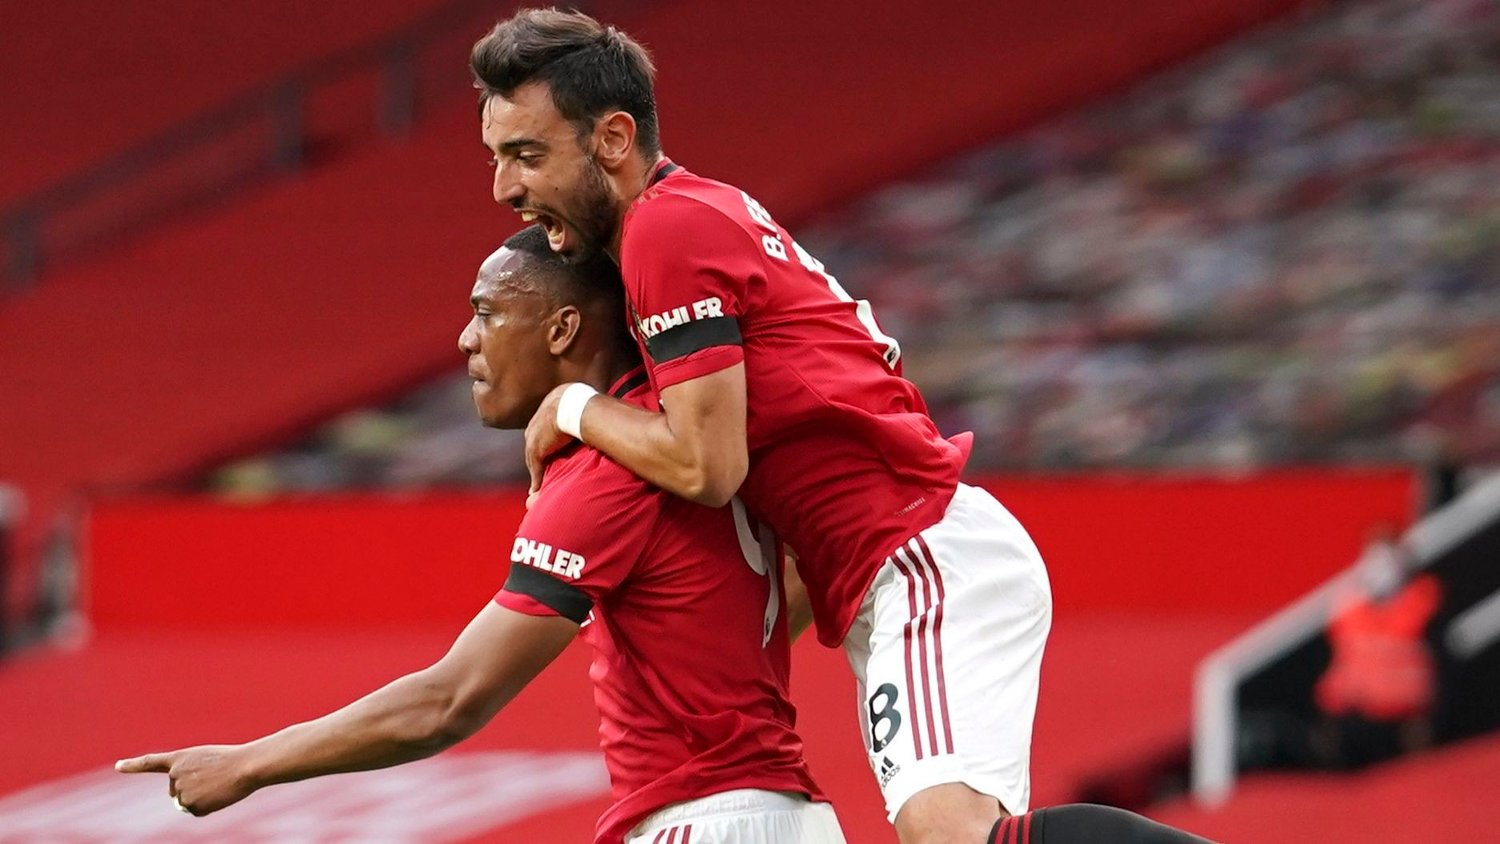 Manchester United's Anthony Martial, left, is congratulated by teammate Bruno Fernandes as he celebrates after scoring his ream's second goal during the English Premier League soccer match between Manchester United and Southampton at Old Trafford in Manchester, England, Monday, July 13, 2020.